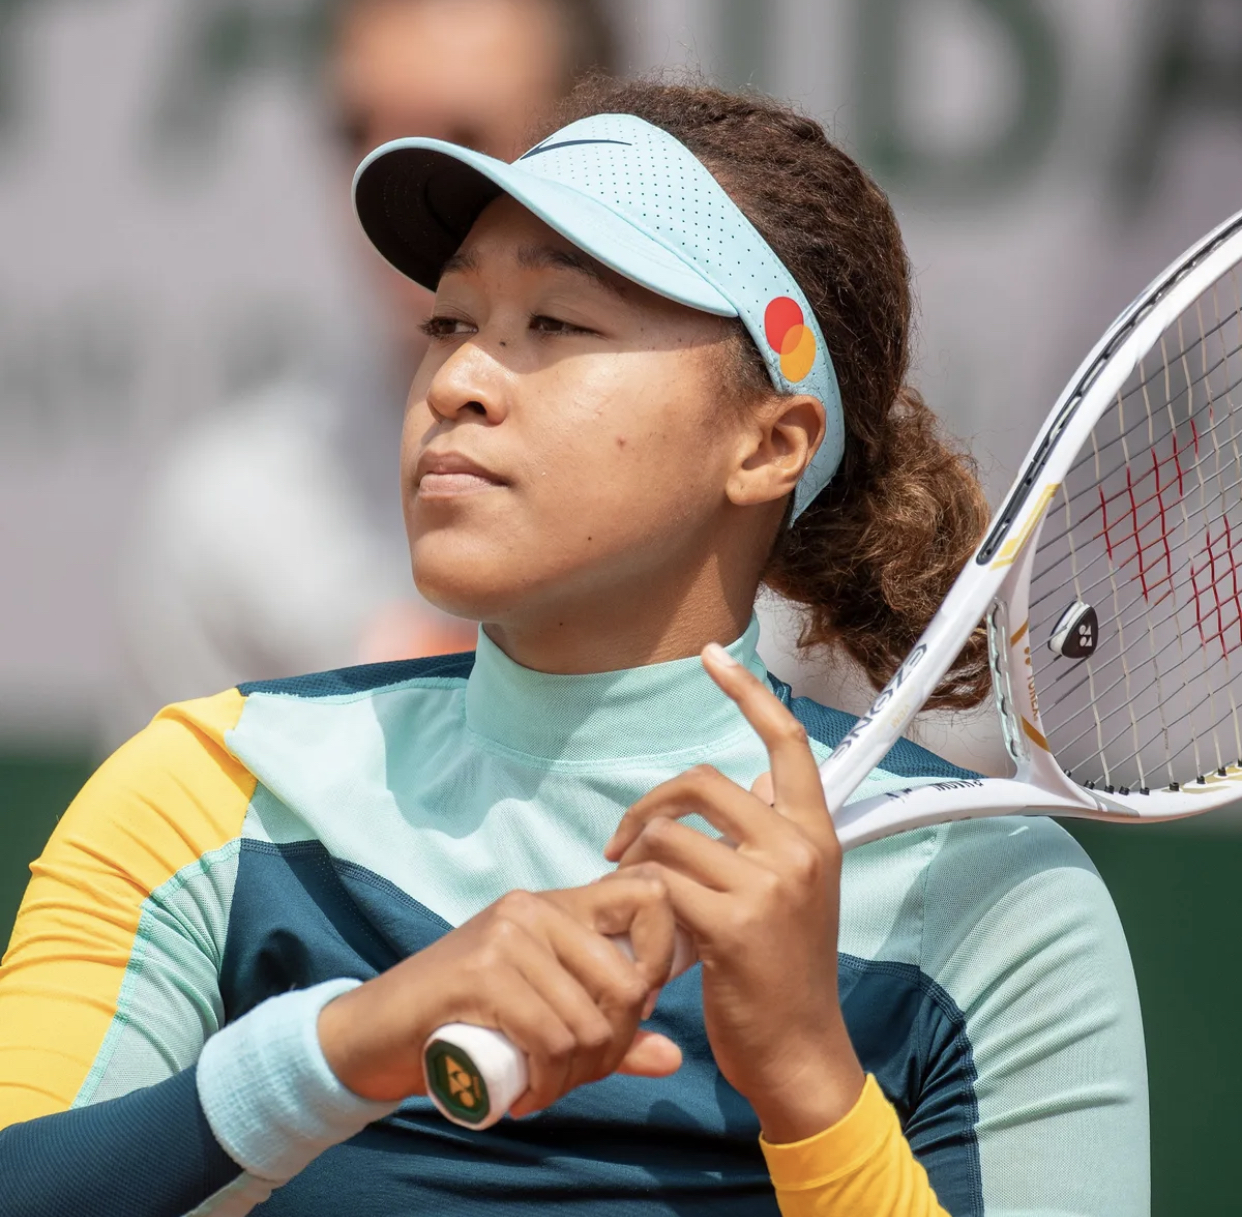 Overwhelming global outpour of Support for Naomi Osaka as tennis leaders pledge to address Naomi Osaka's Concern.